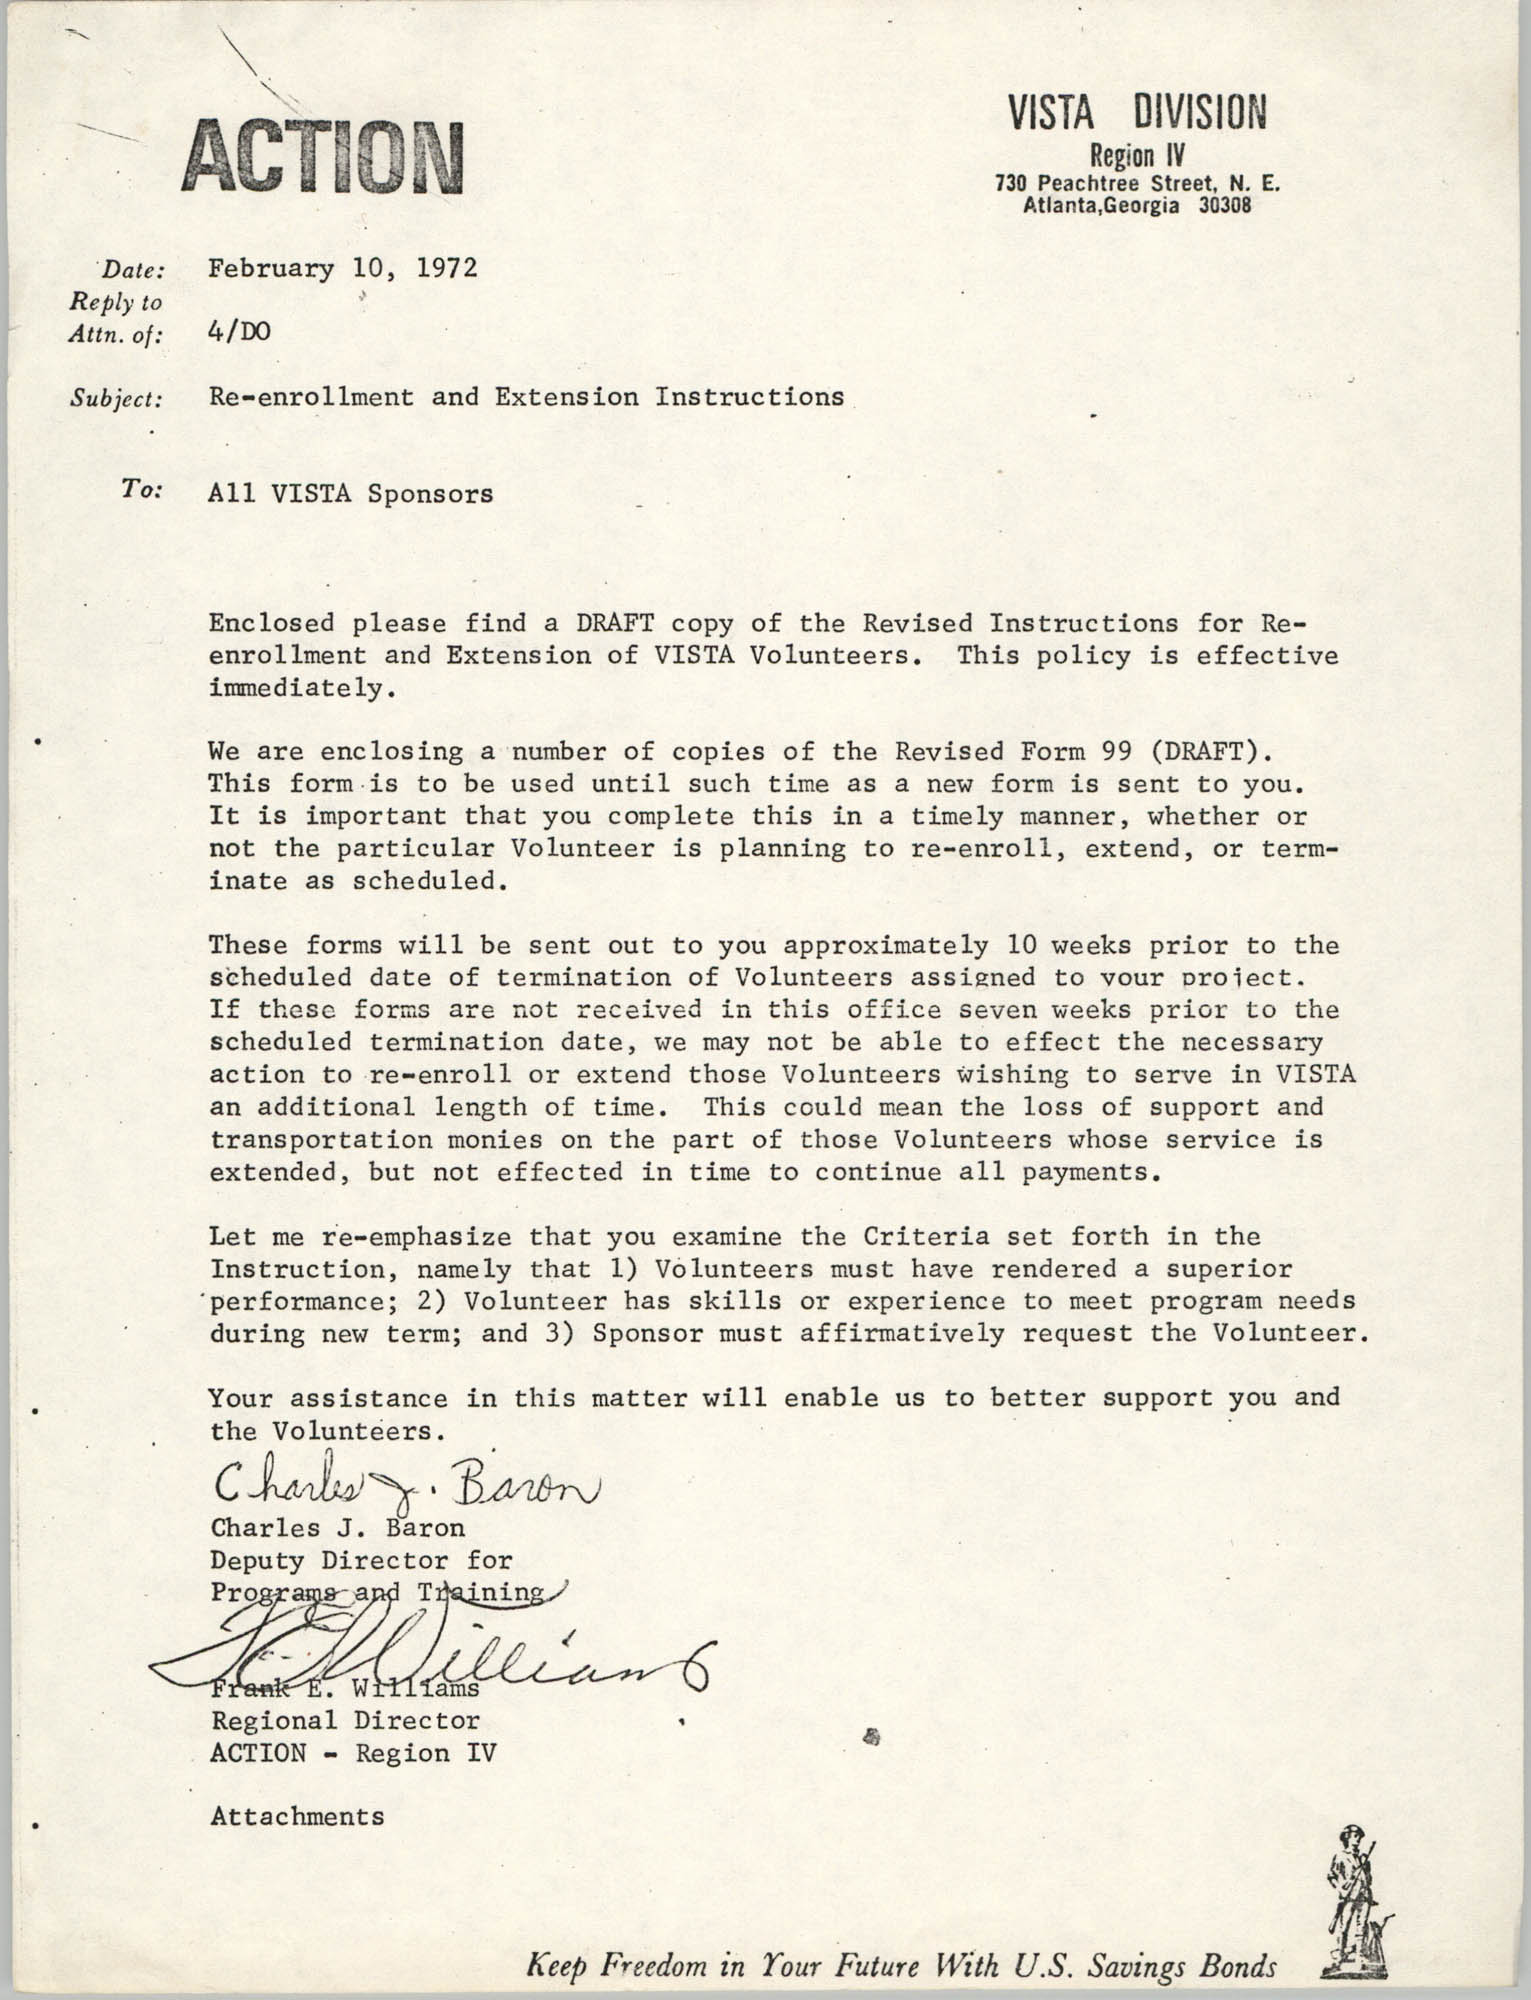 Memorandum from Charles J. Baron and Frank E. Williams to All VISTA Sponsors, February 10, 1972